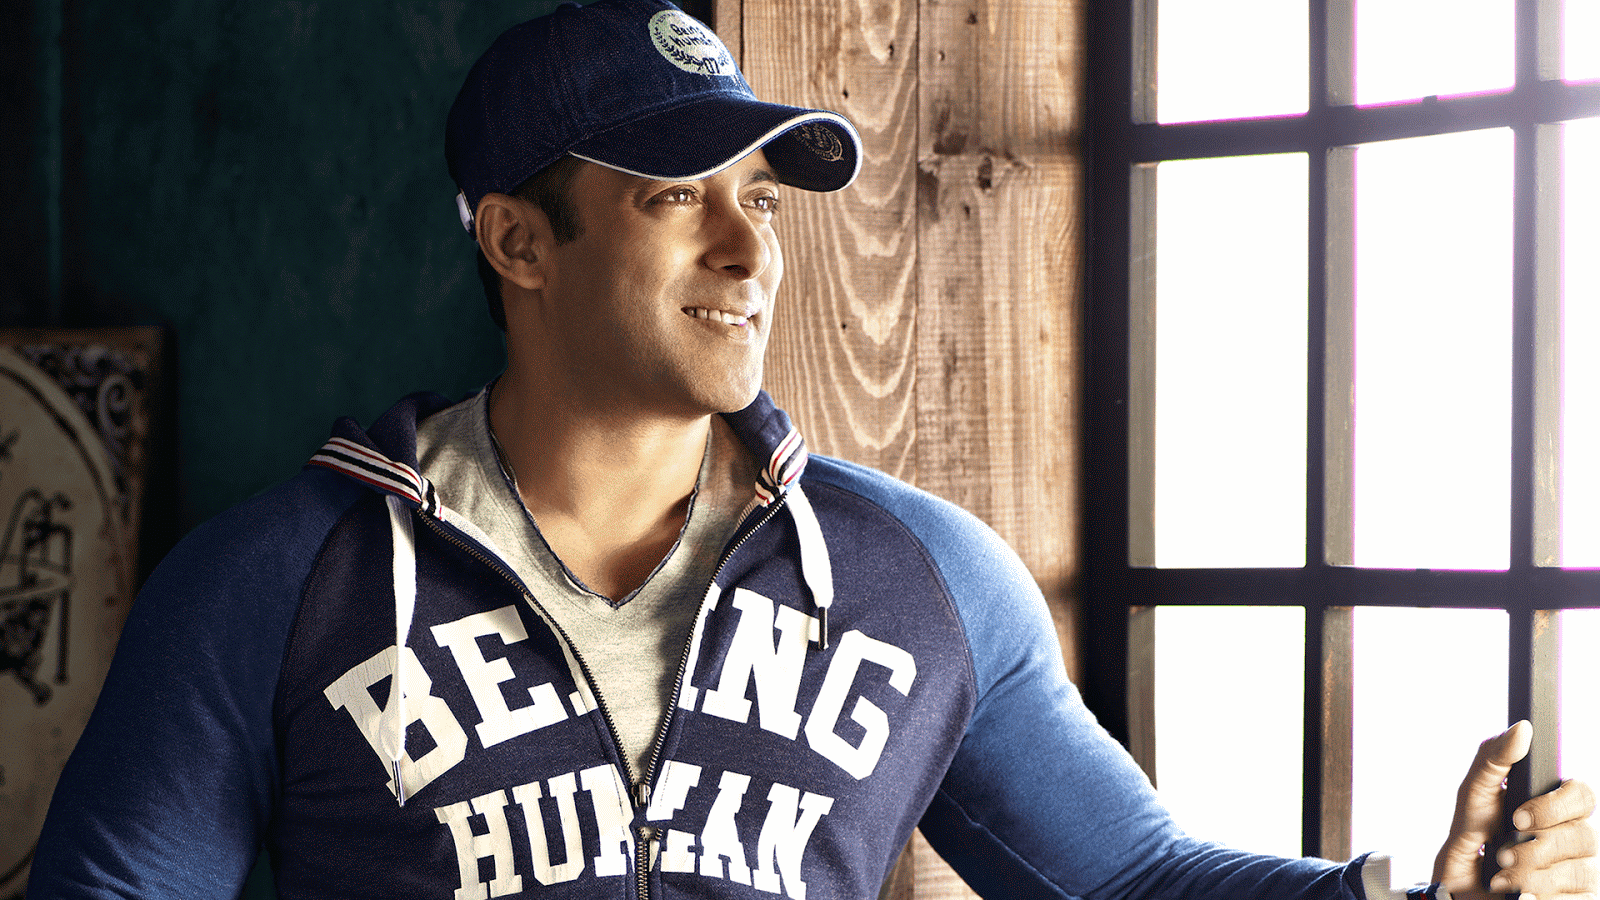 Salman Khan Images Full HD Photo Wallpaper And Background Photos